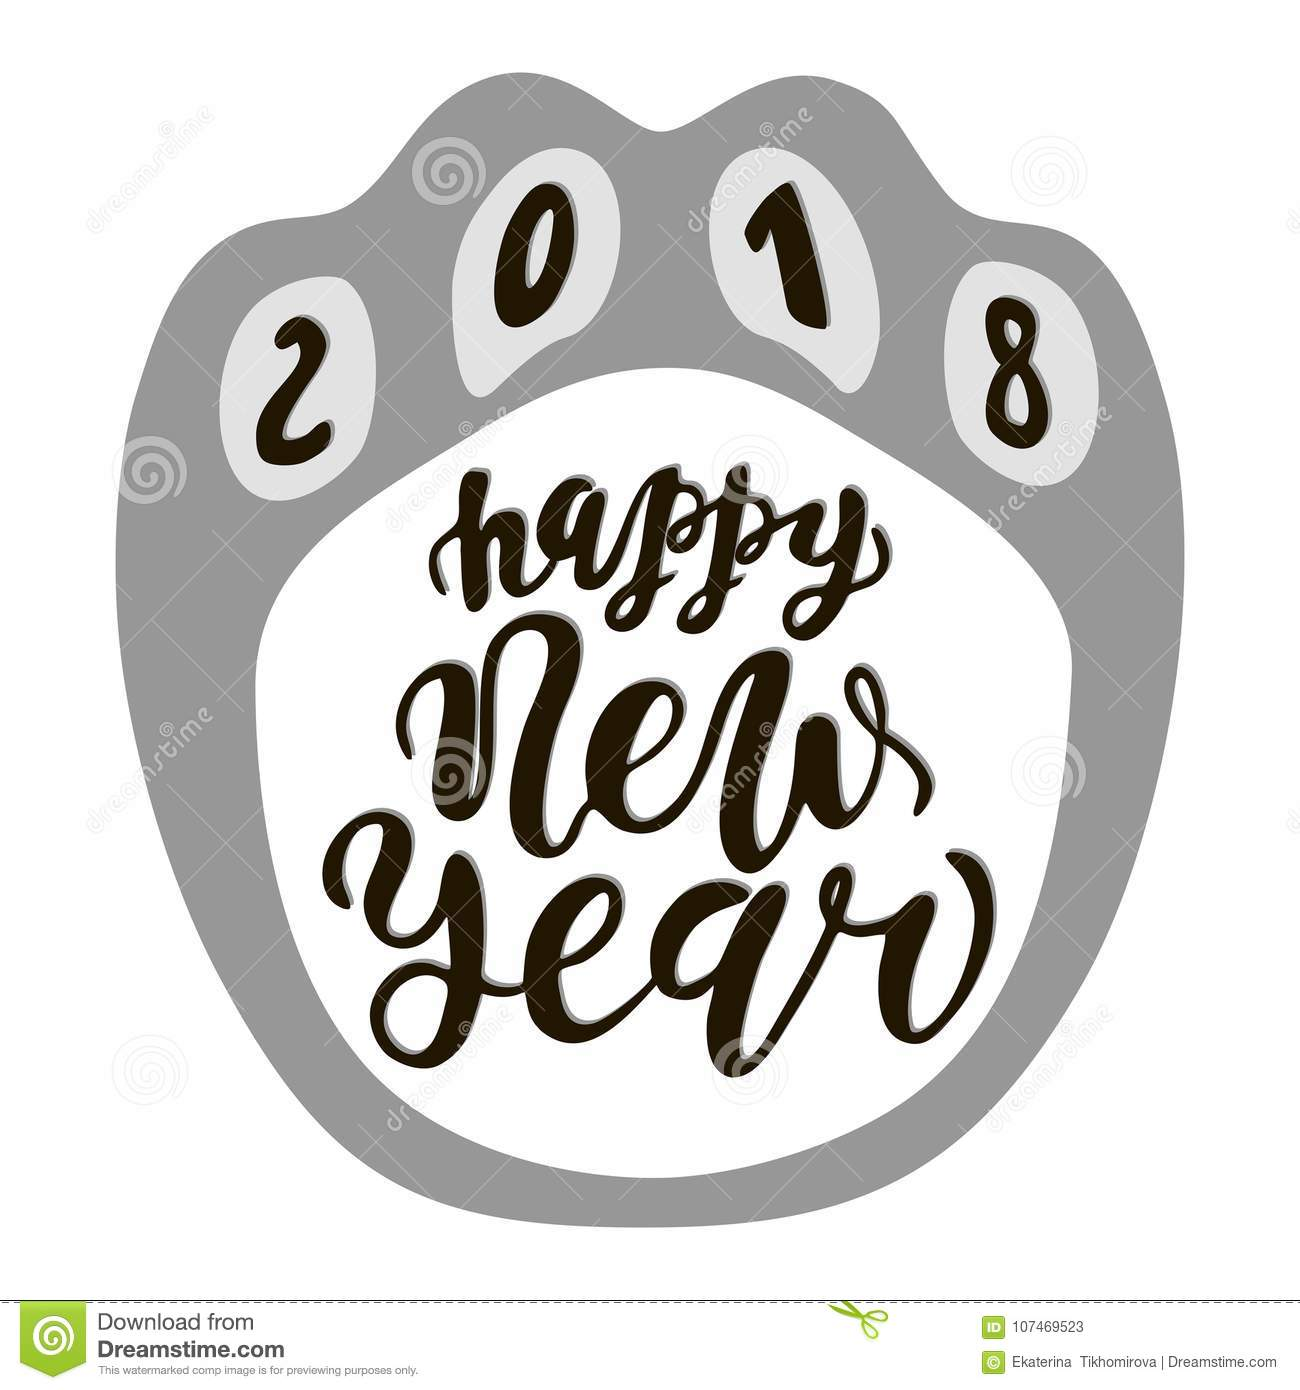 Happy chinese new year 2018 dog text hand drawn lettering holiday happy chinese new year 2018 dog text hand drawn lettering holiday greetings quote great for christmas and new year cards poste kristyandbryce Images